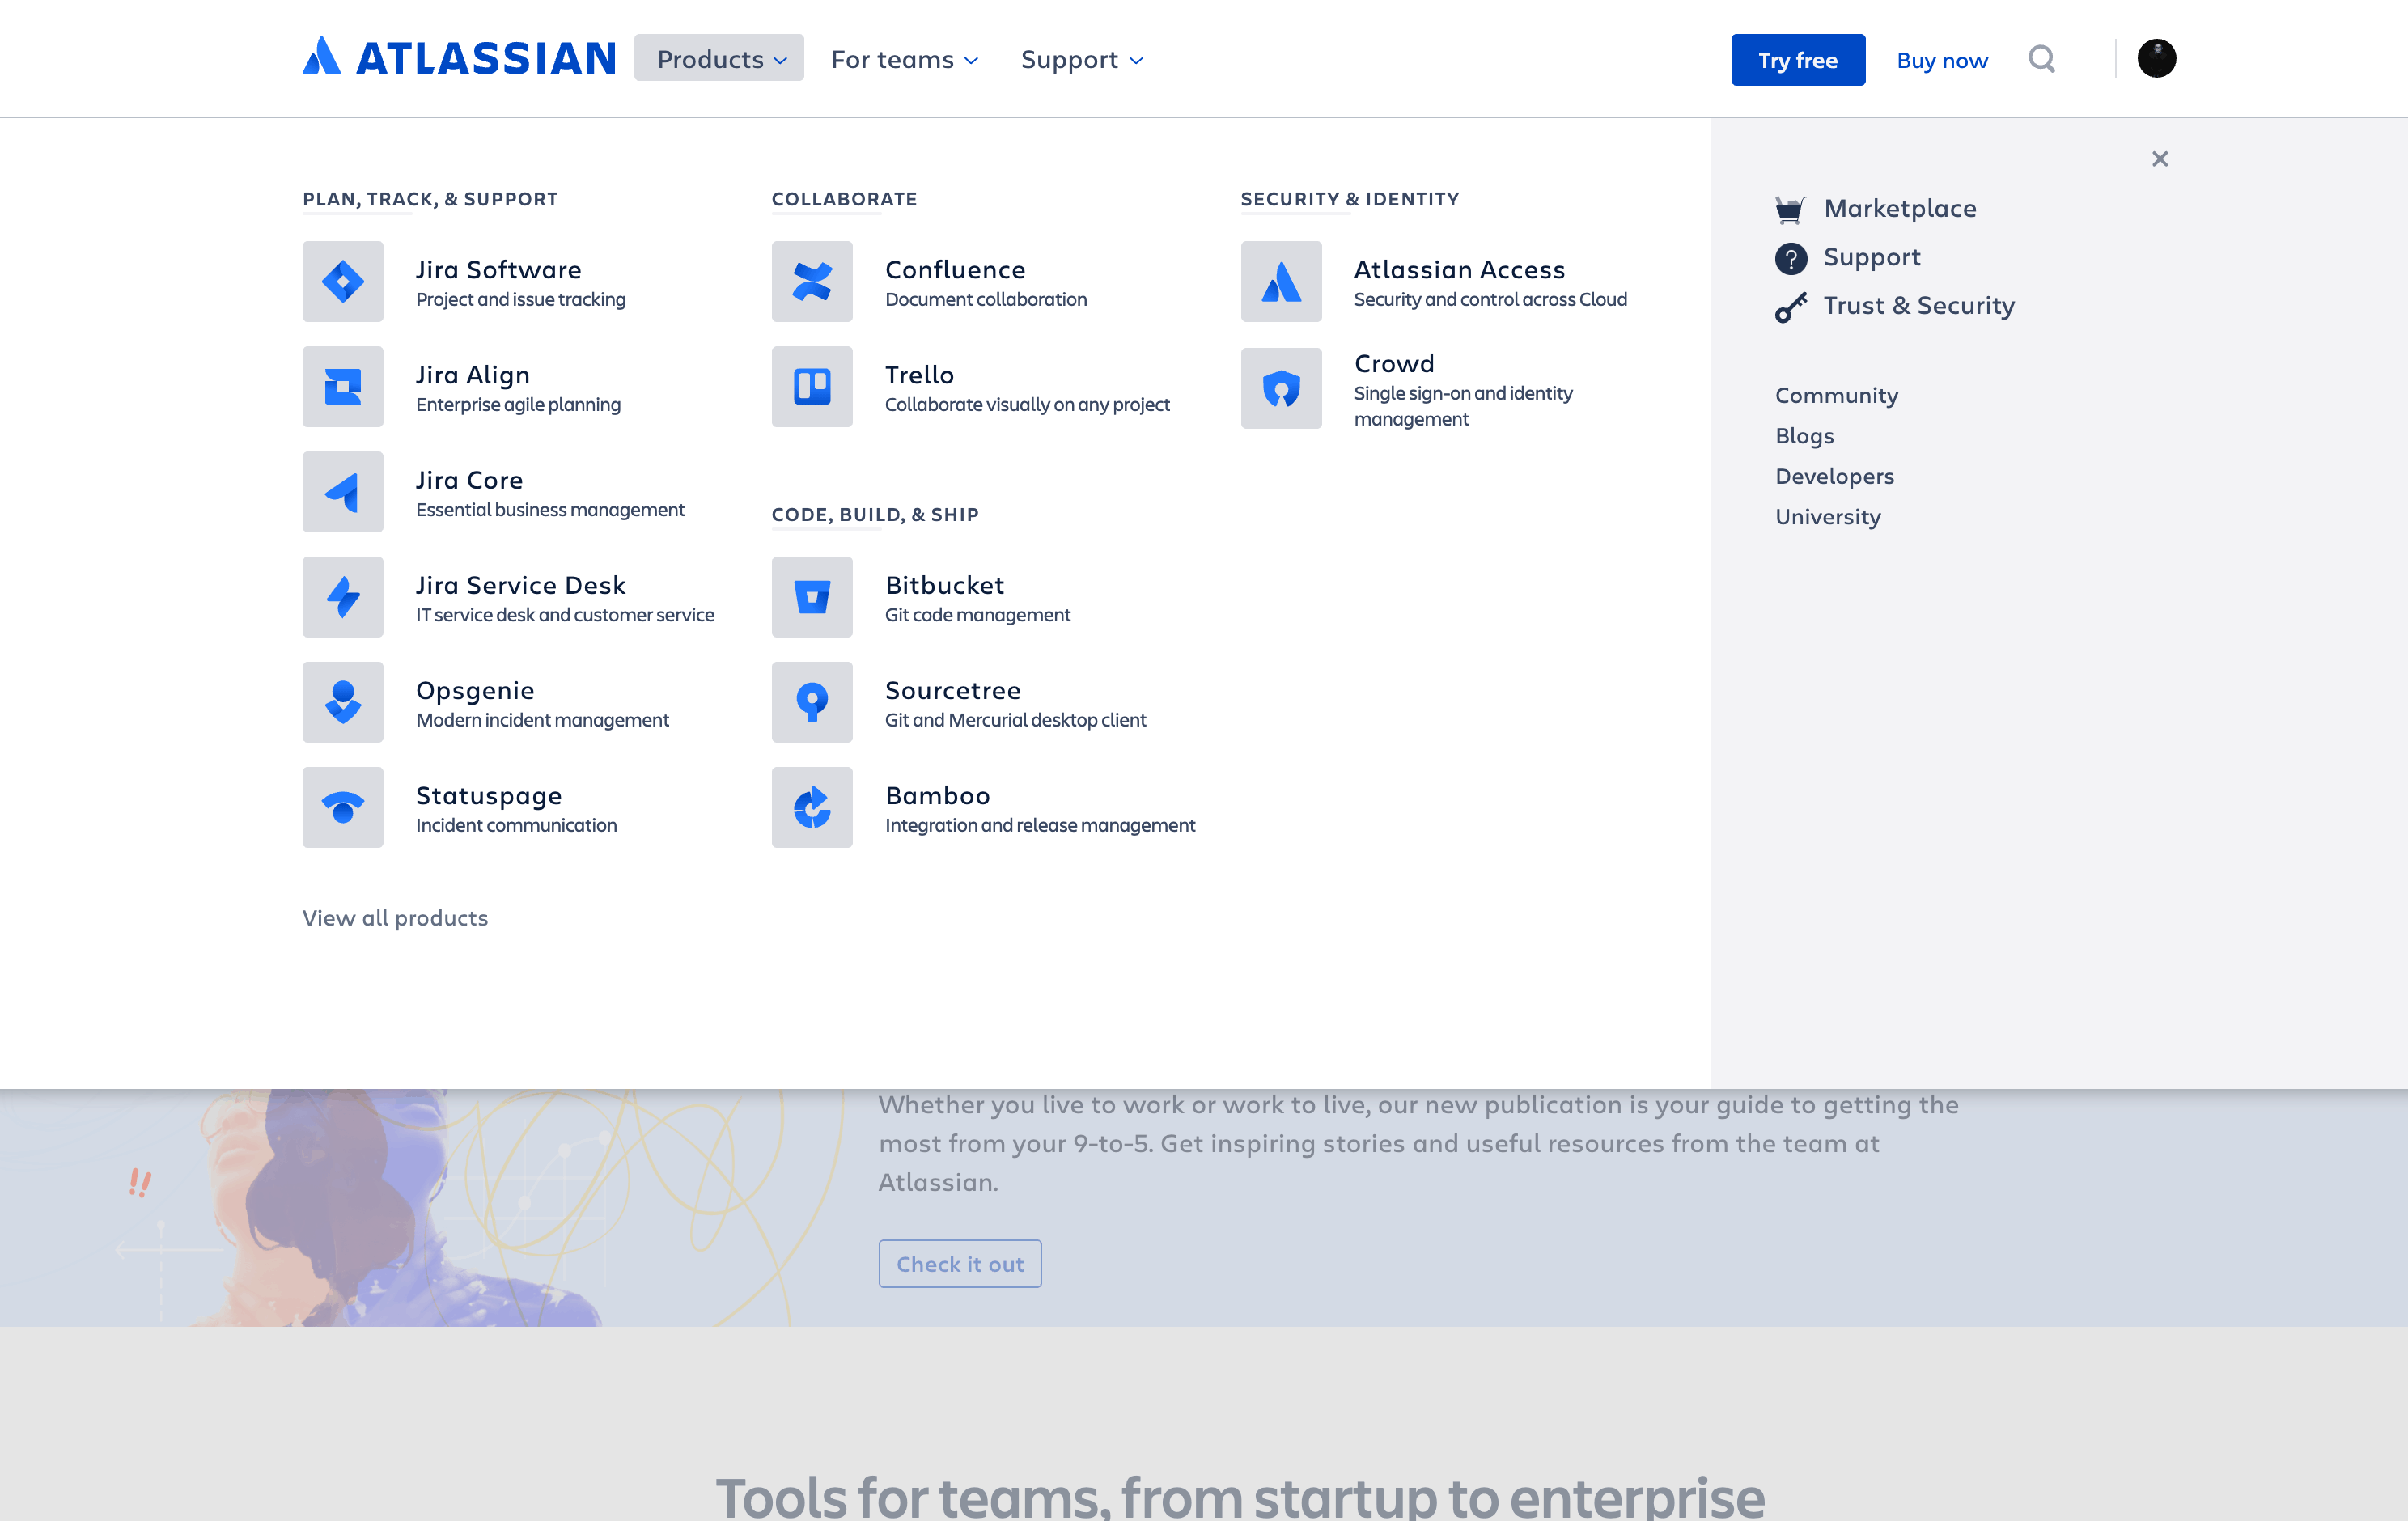 Menu by Atlassian